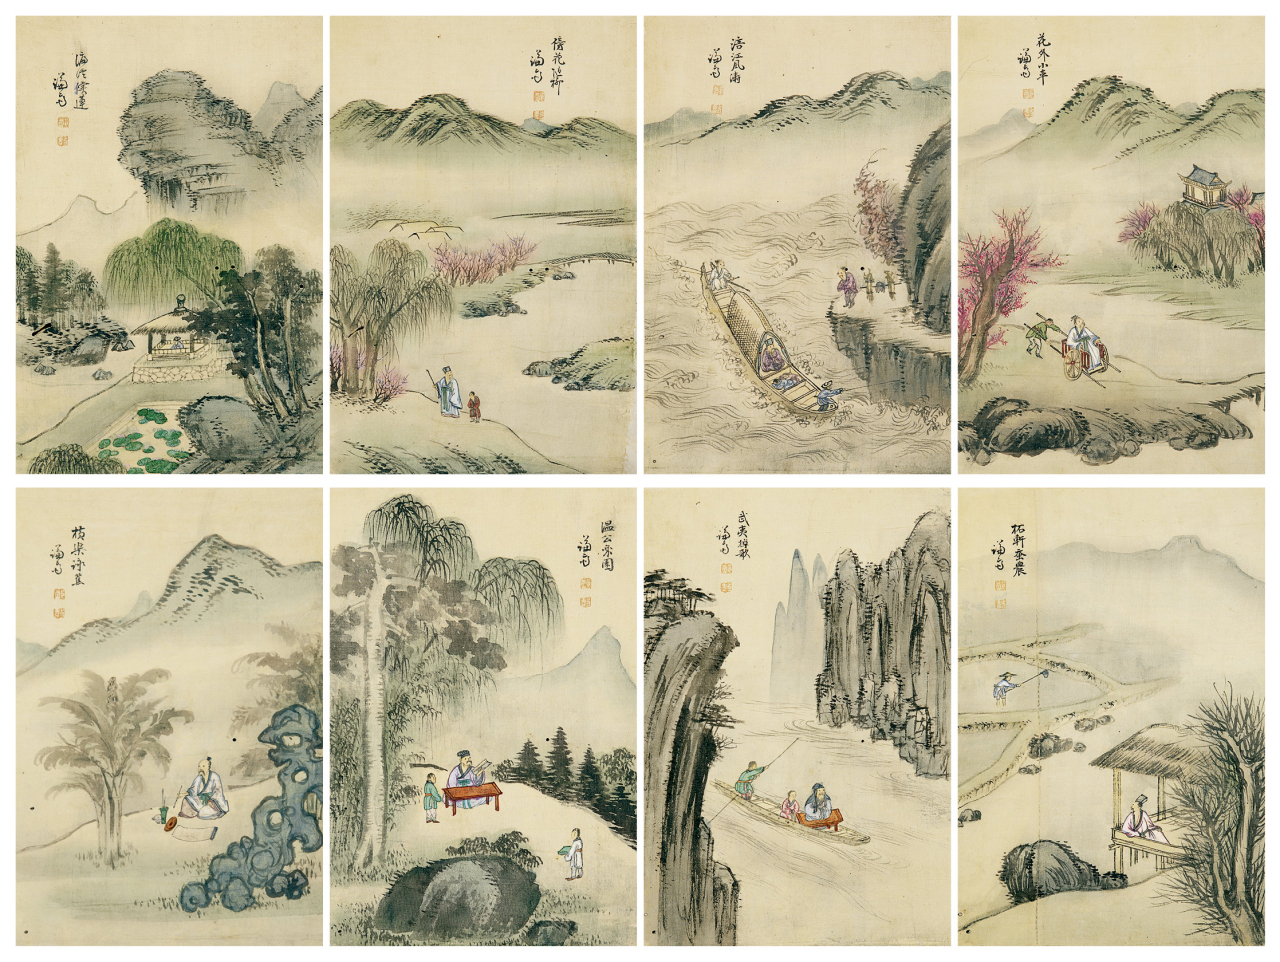 Songyu palhyeondo (eight Confucian scholars of the Song dynasty) by Jeong Seon from the painting album designated as Treasure 1796 (K Auction)